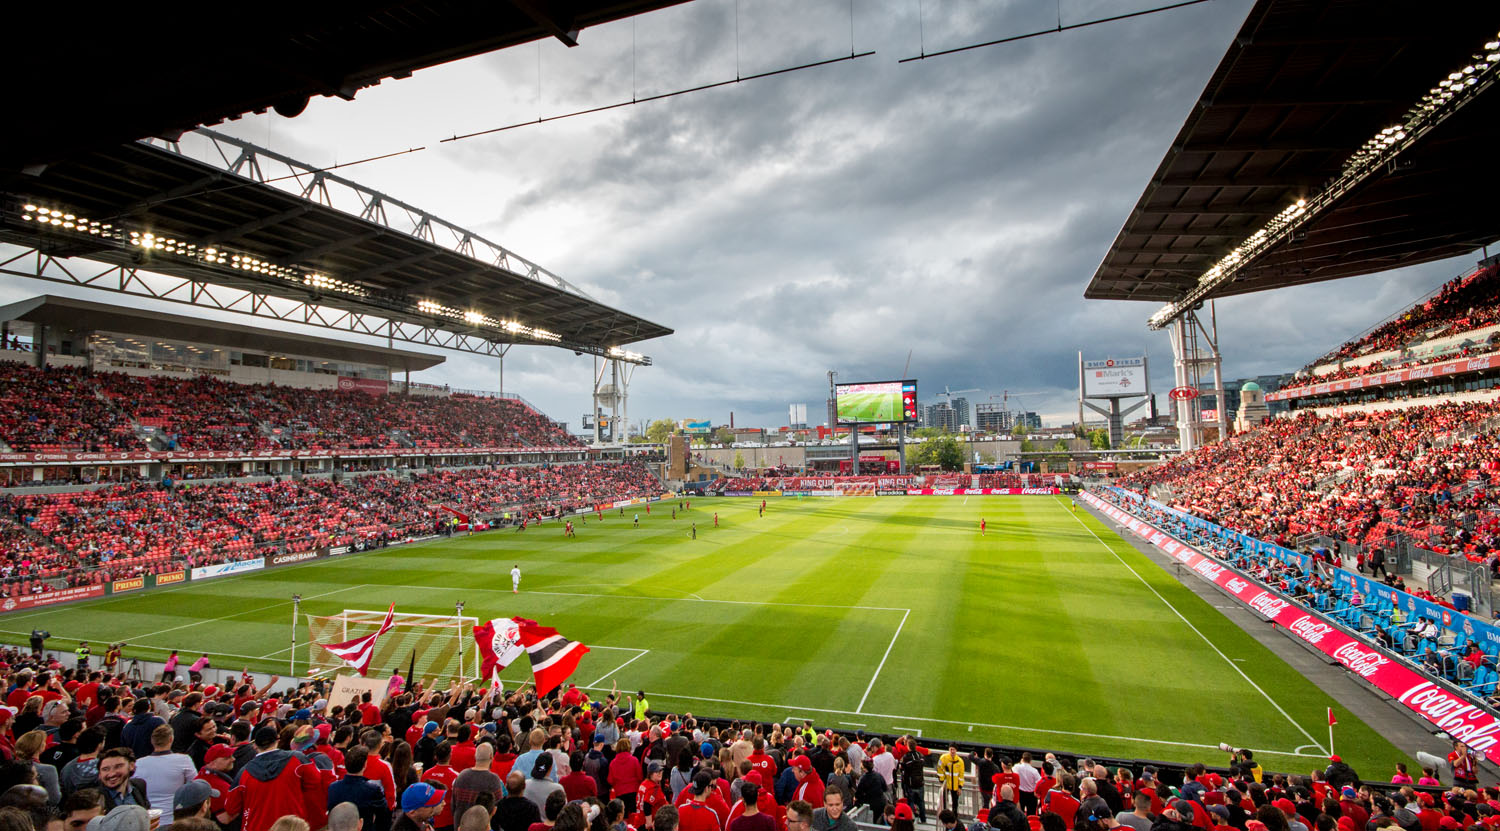 The sun peaking through the rain clouds at BMO Field on a warm spring night in May 2017. Image by Dennis Marciniak of denMAR Media.